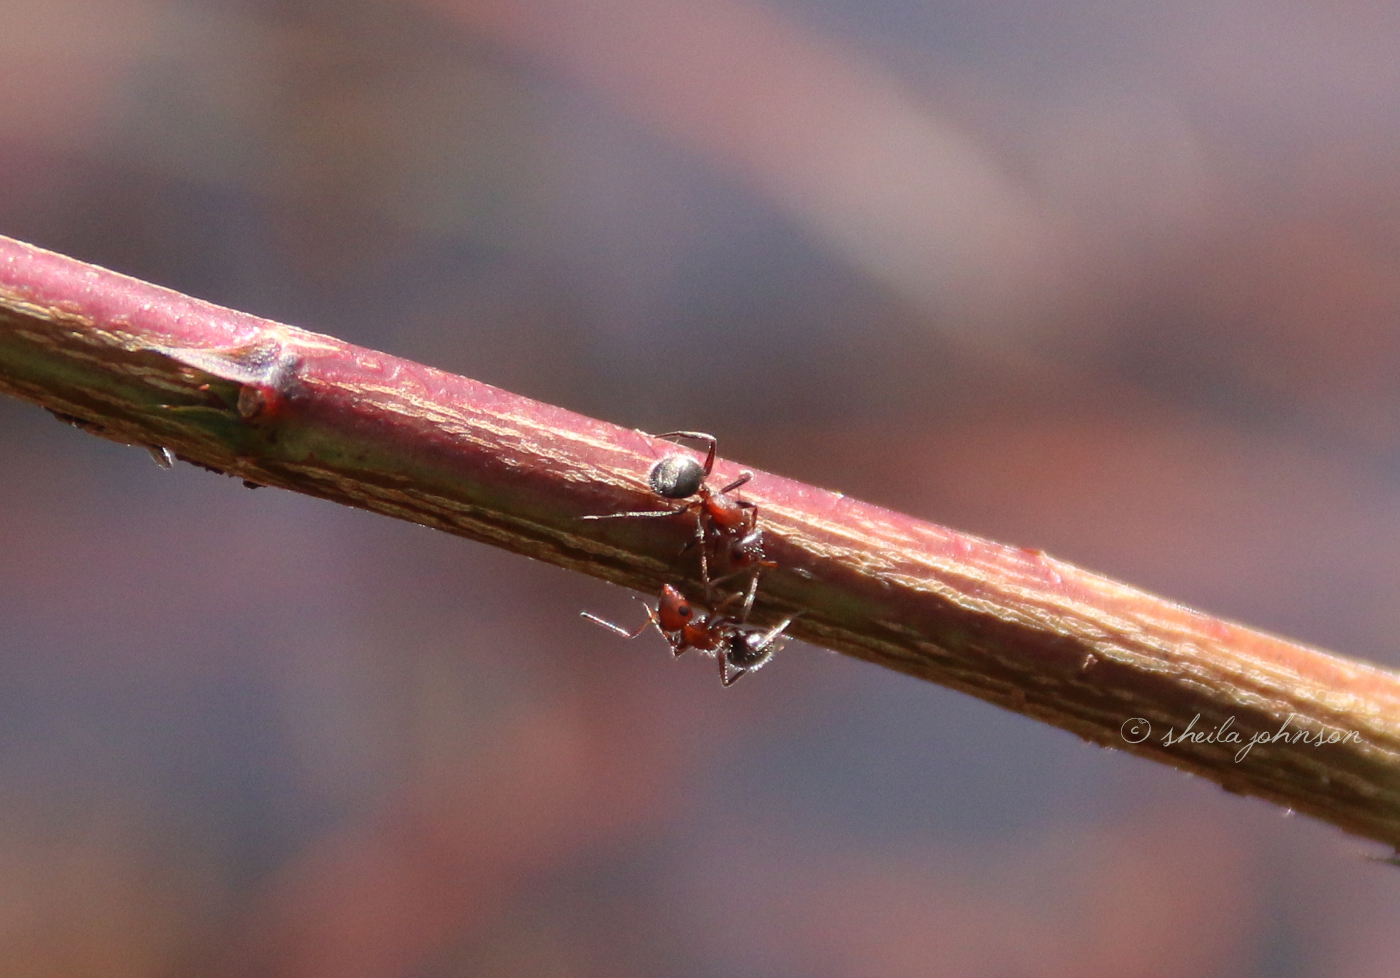 A Meeting Between Two Florida Fire Ants Takes Place In The Middle Of A Twig.